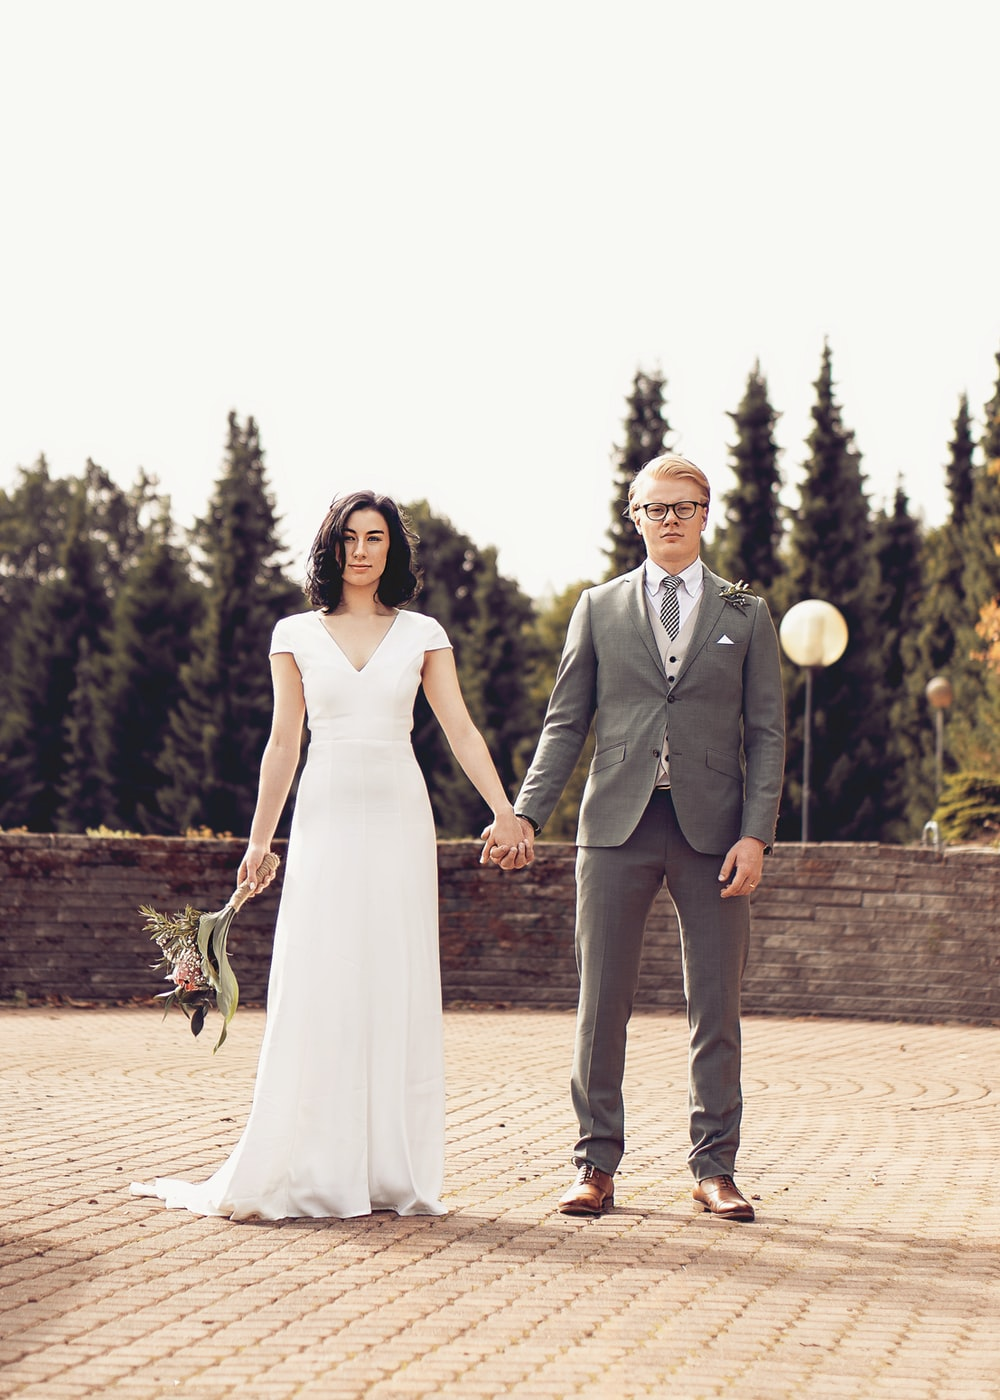 man in black suit and woman in white wedding dress standing on brown brick floor during